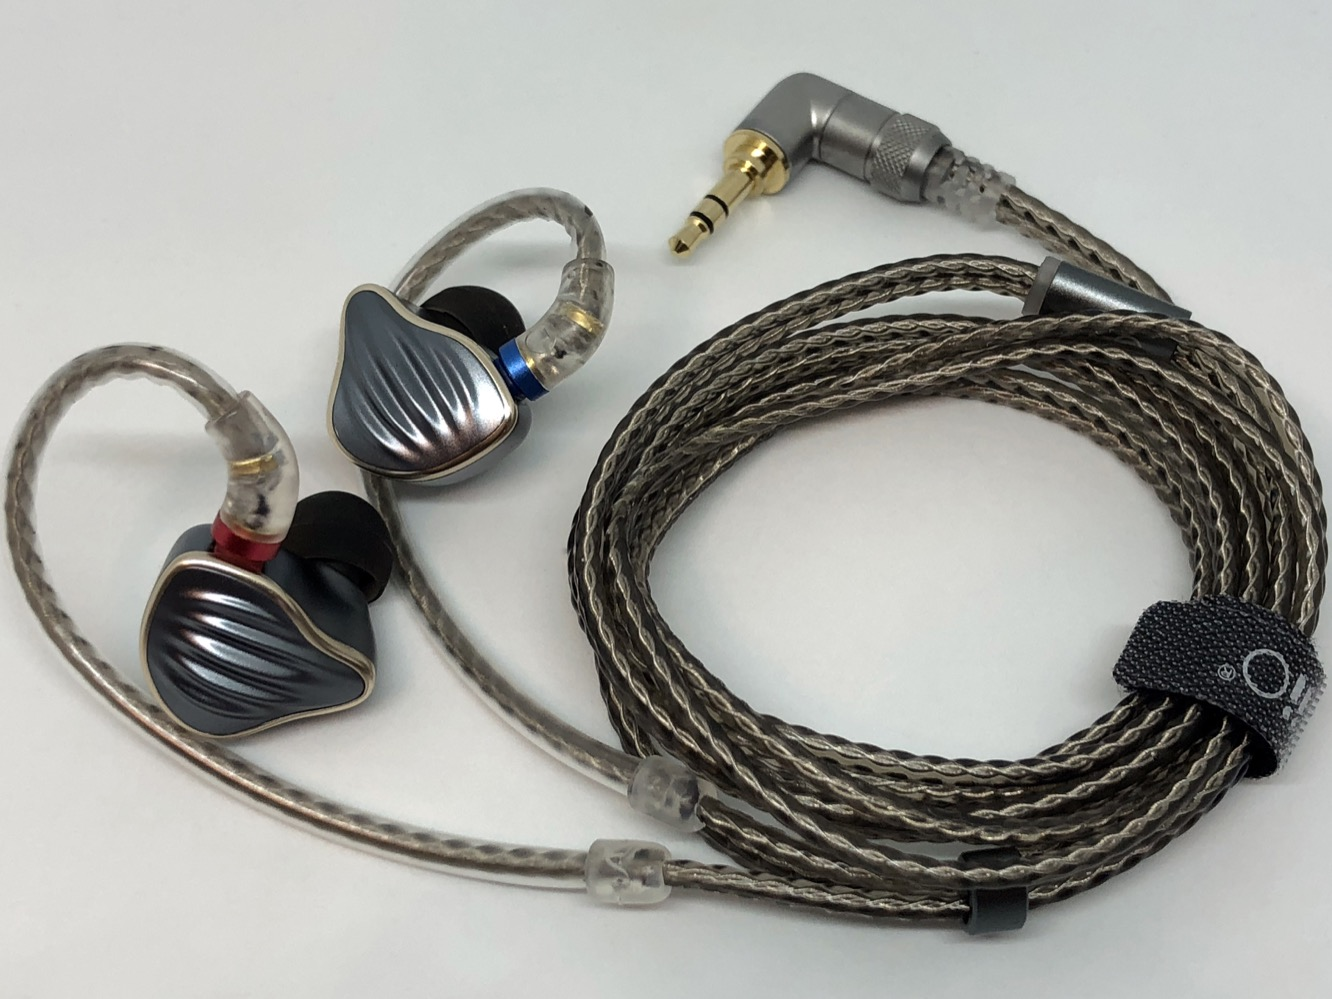 Review: Fiio FH5 Quad Driver Hybrid In-Ear Monitors